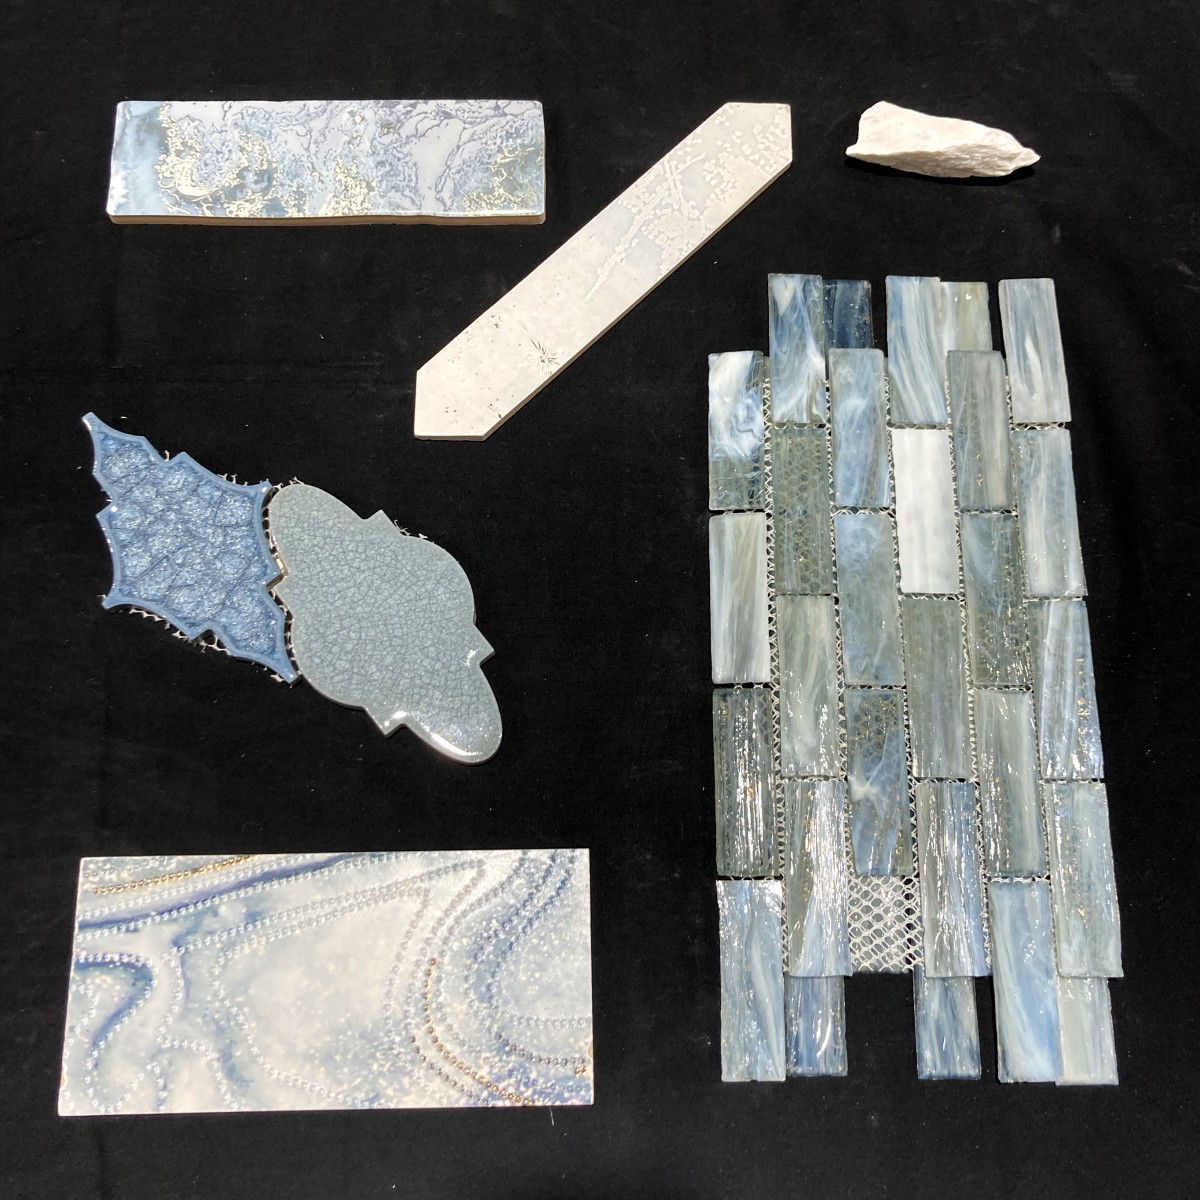 A mix of blue and white porcelain and glass tiles.